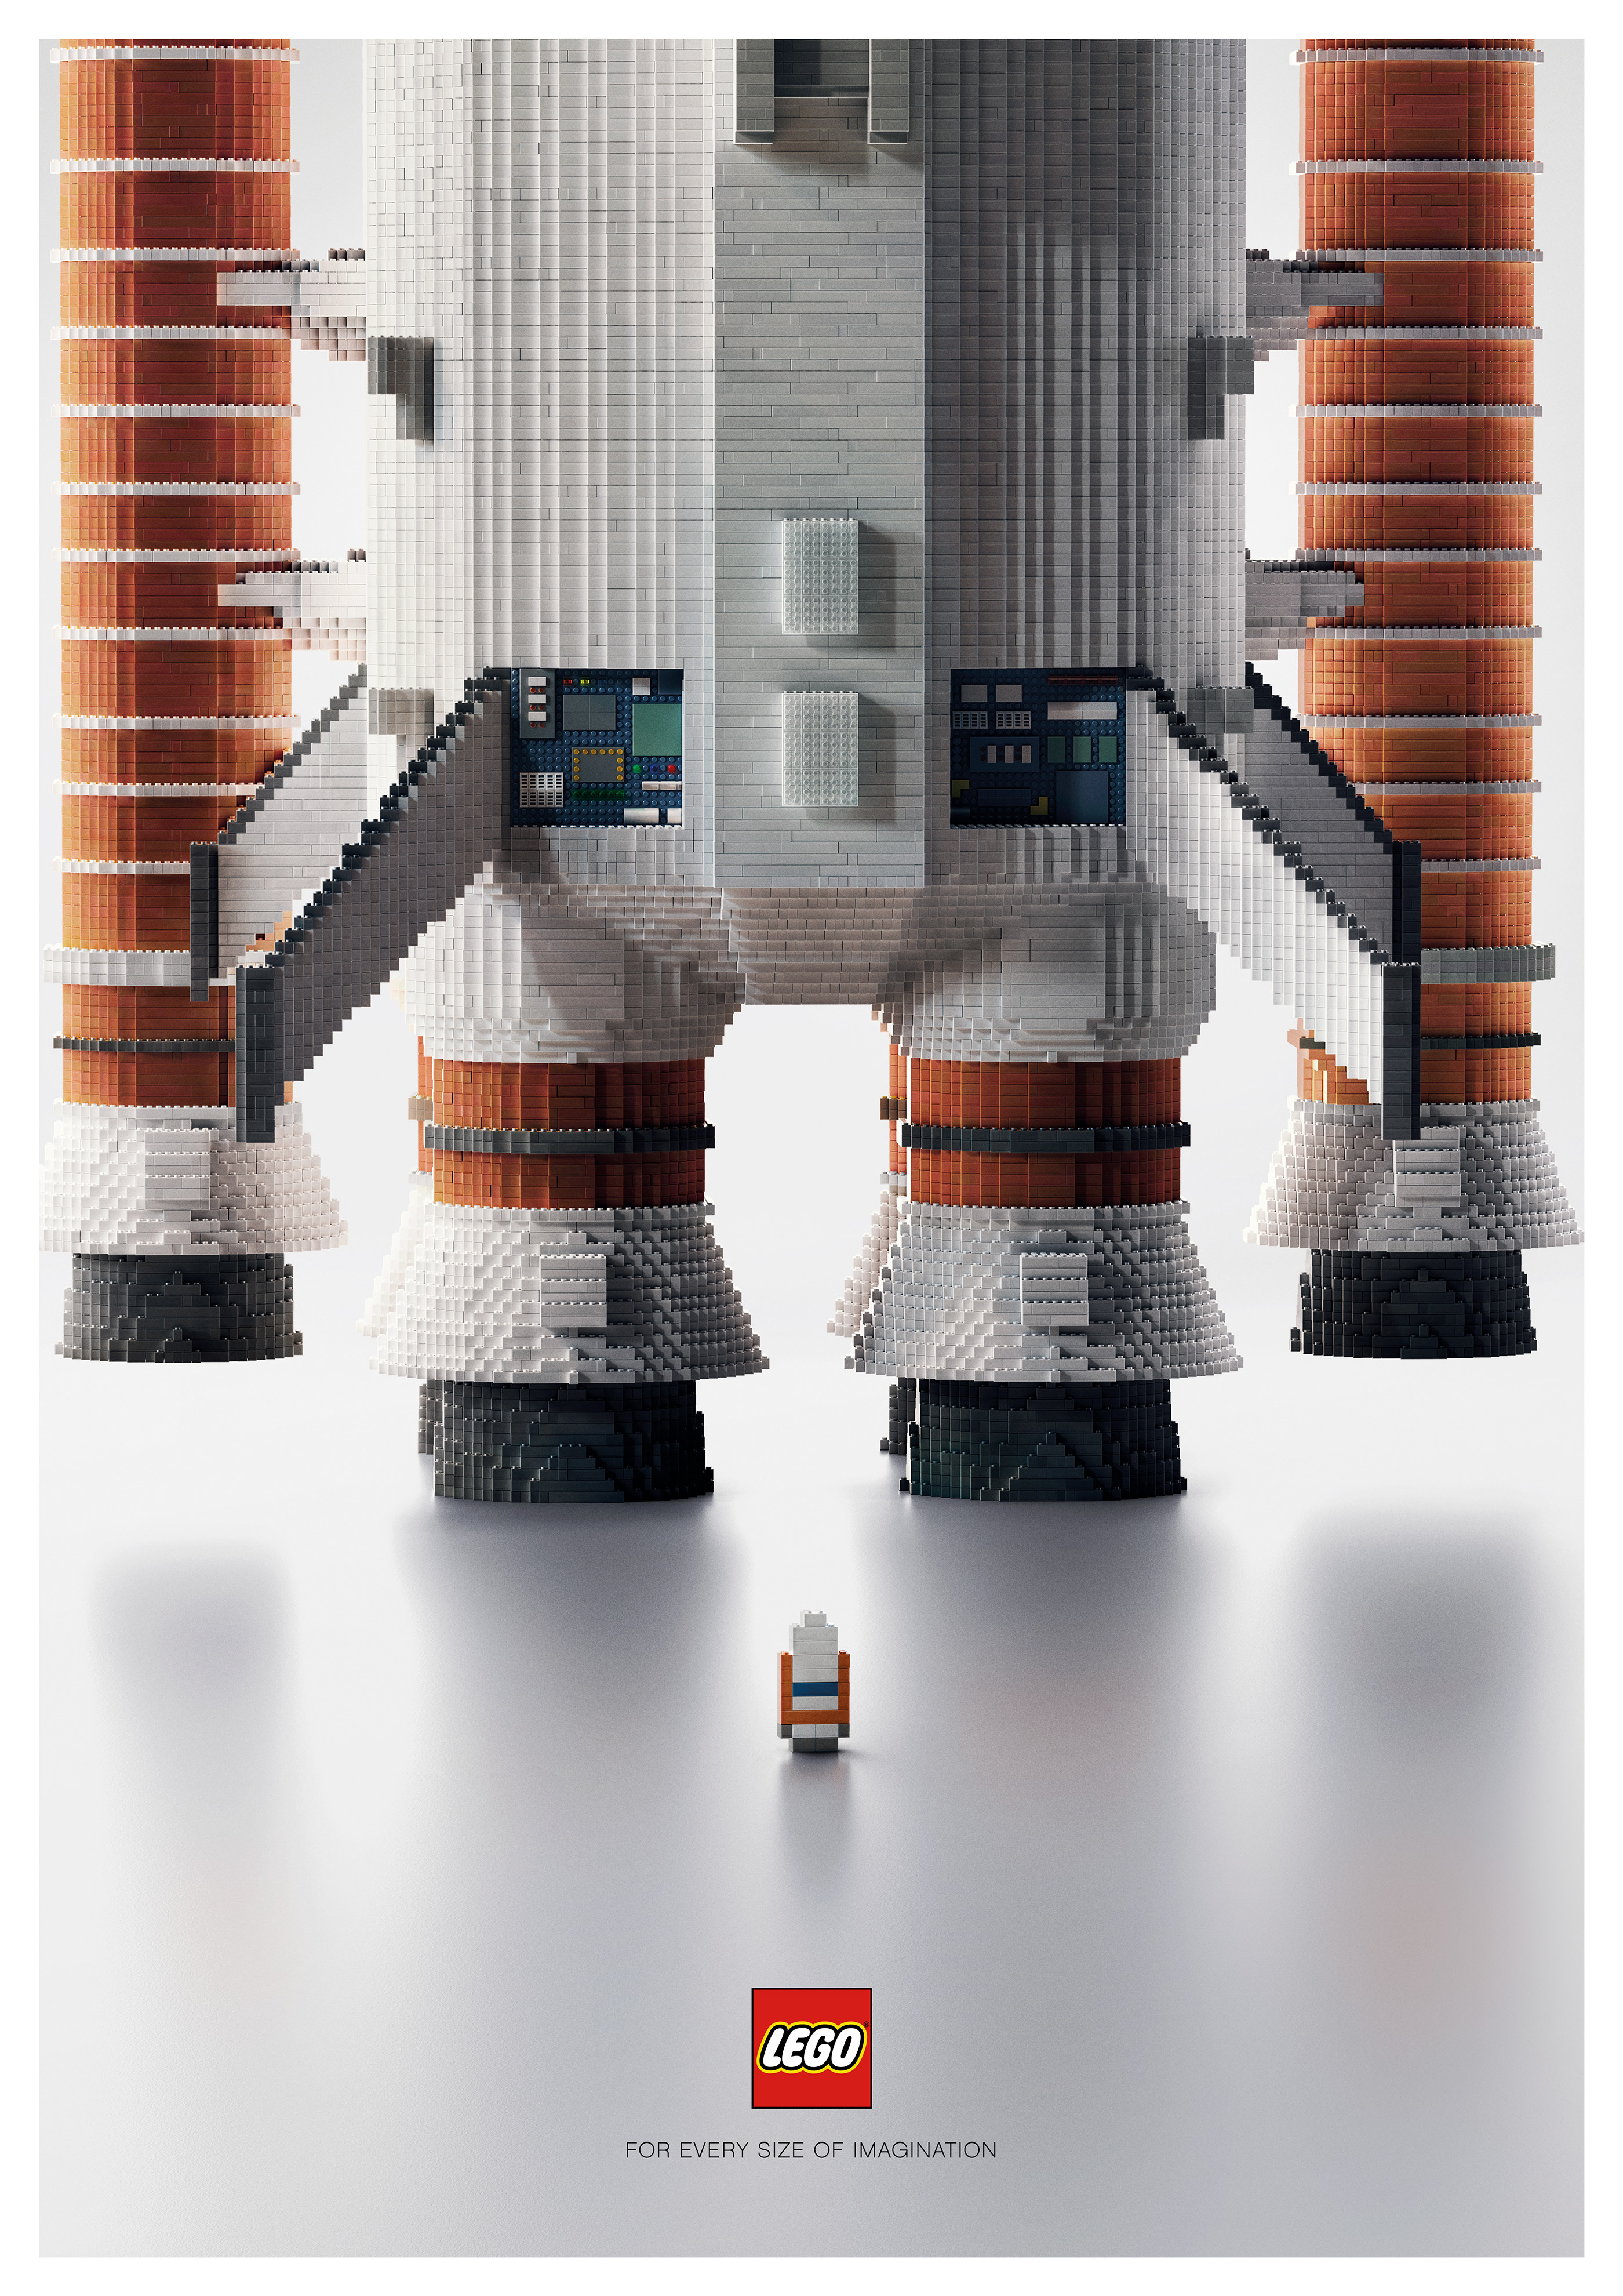 Ogilvy & Mather's creative and genius Lego campaigns